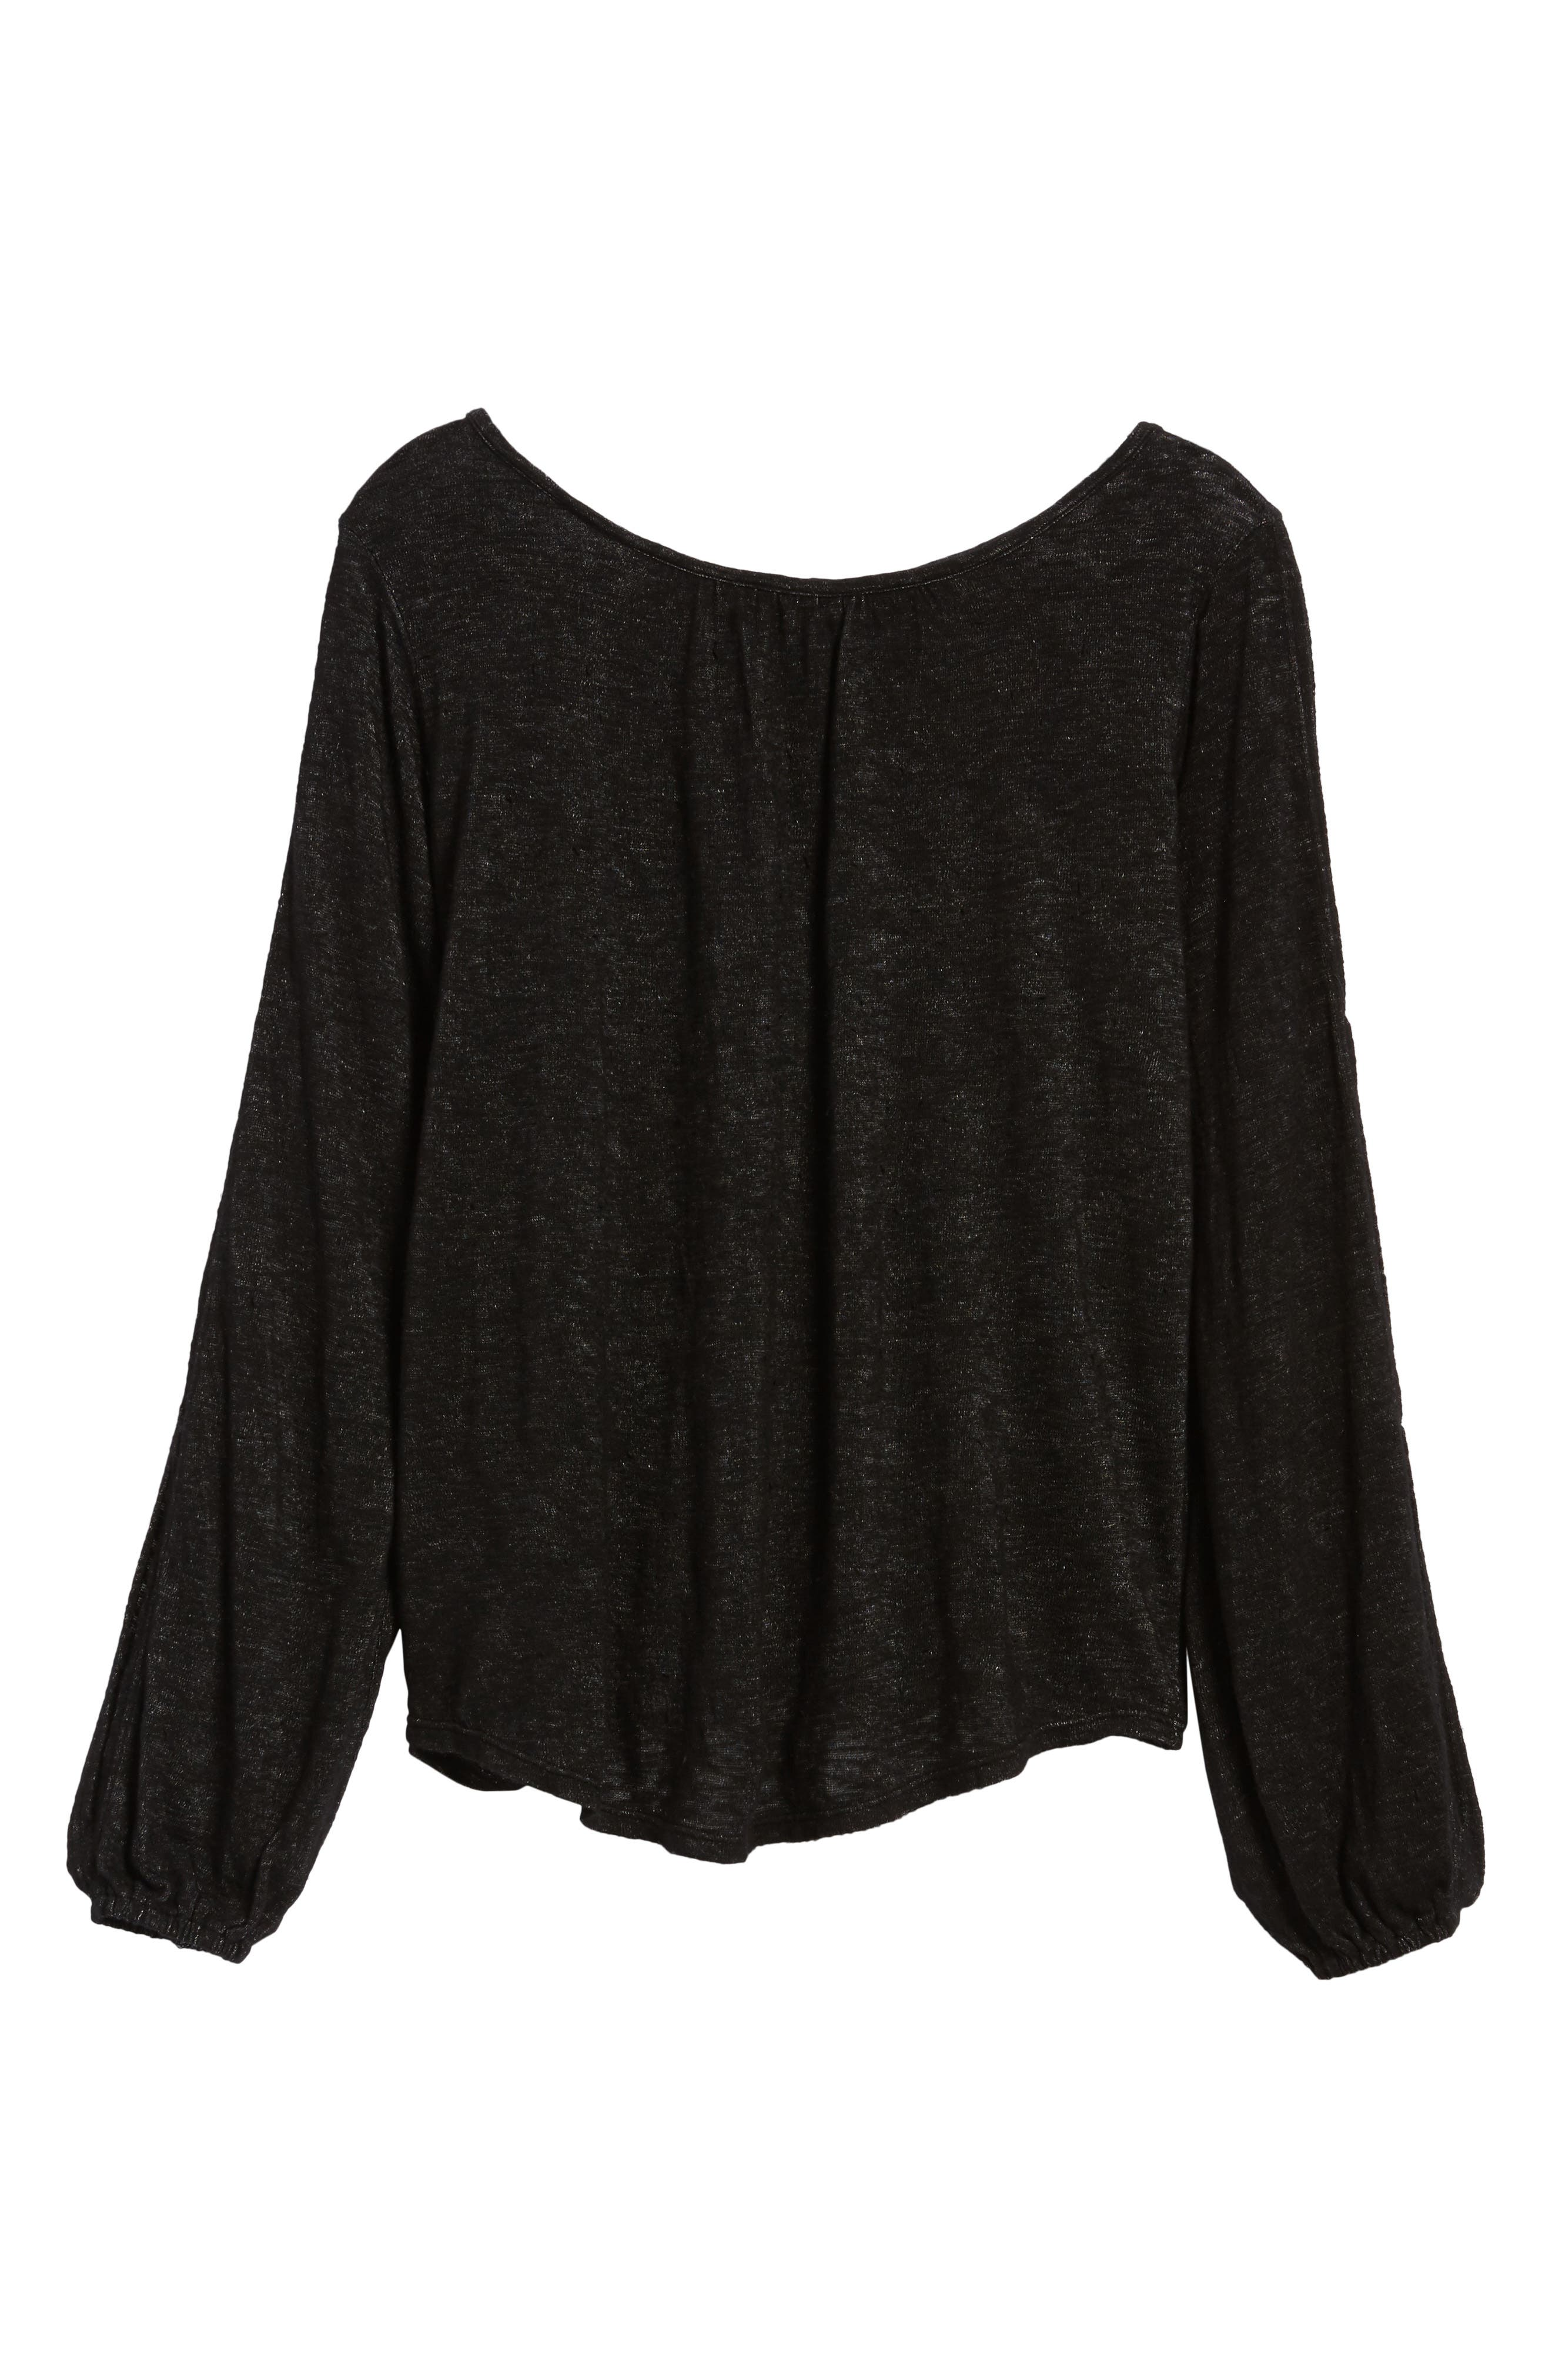 Slit Sleeve Knit Top,                             Alternate thumbnail 6, color,                             001